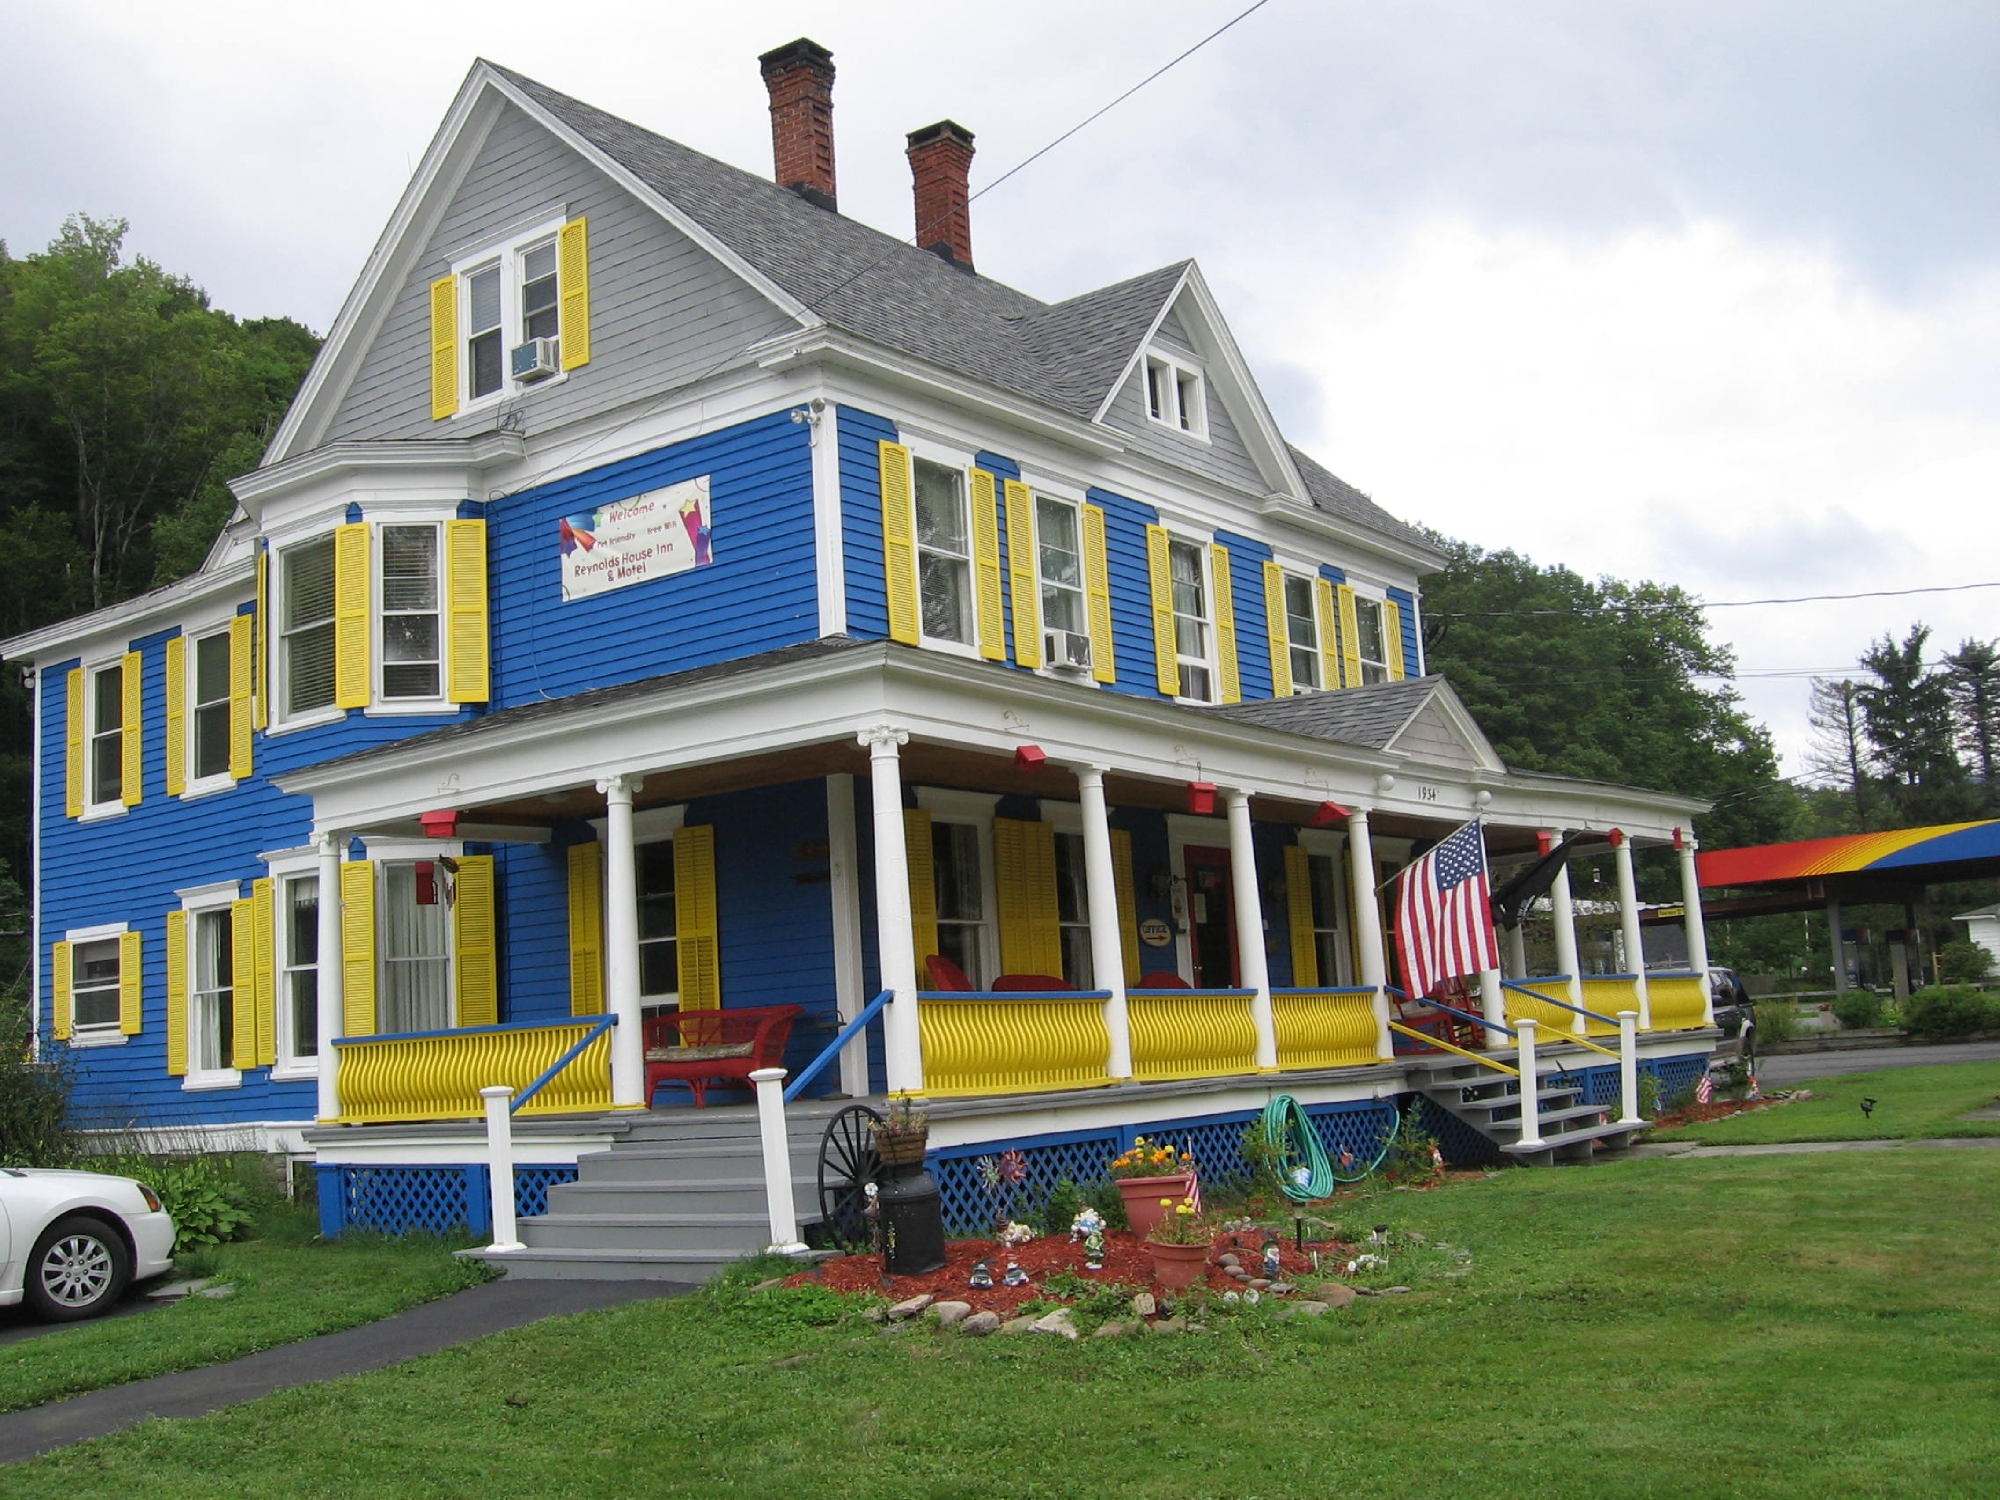 Reynolds House Inn & Motel